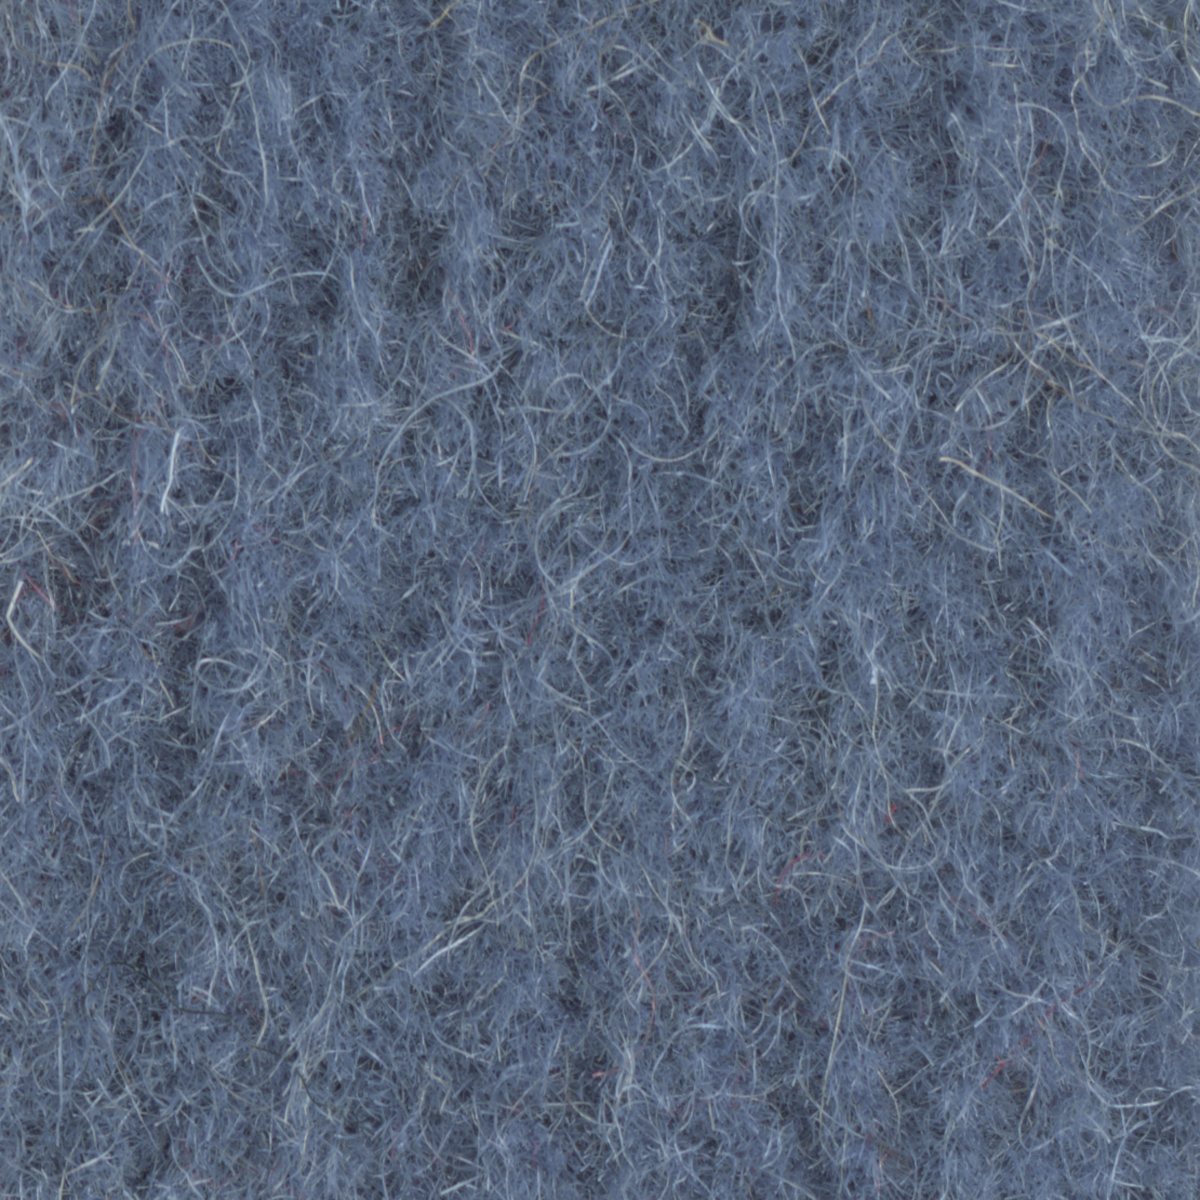 LT BLUE ENGLISH WILTON II WOOL CARPET